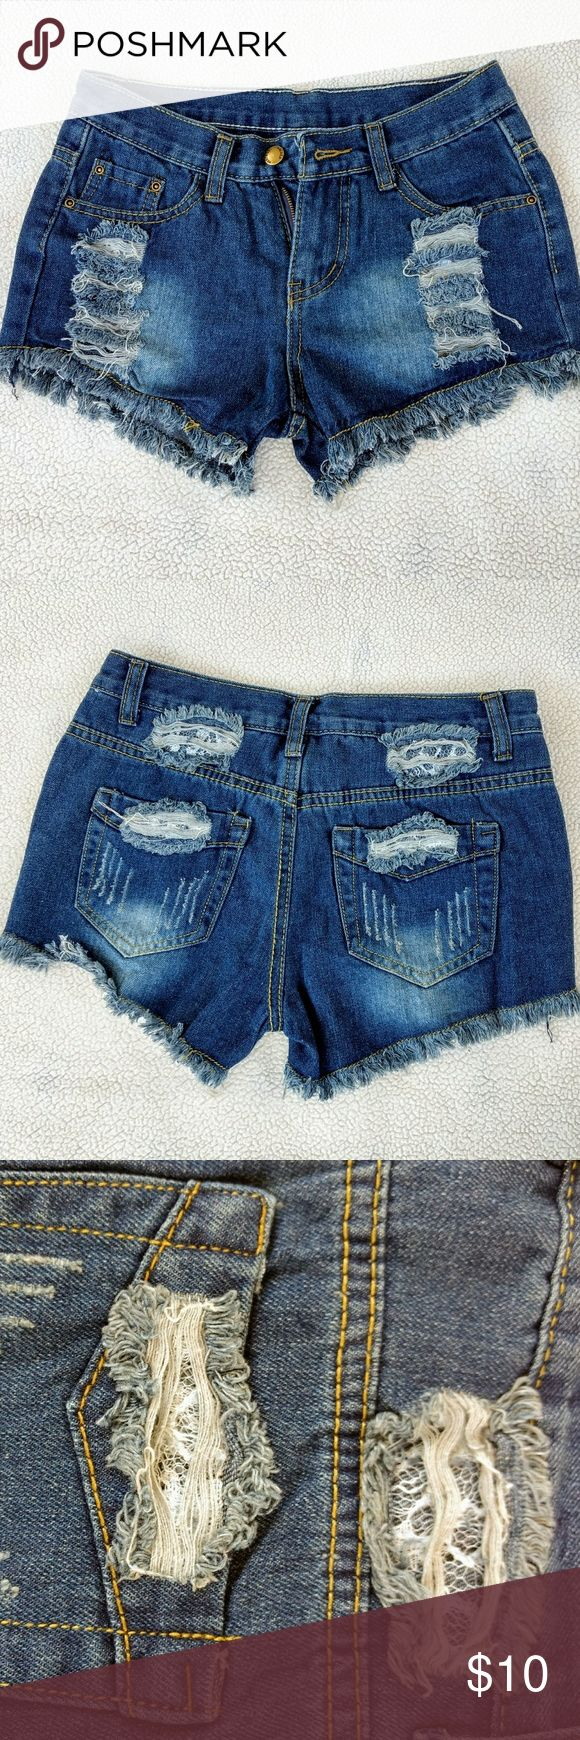 Lace underlay Ripped, Blue Jean shorts! Never worn before..... size small waist band 28inches shorts true to front and back photo ..camera went screwy on the close-ups .... no name Shorts Jean Shorts